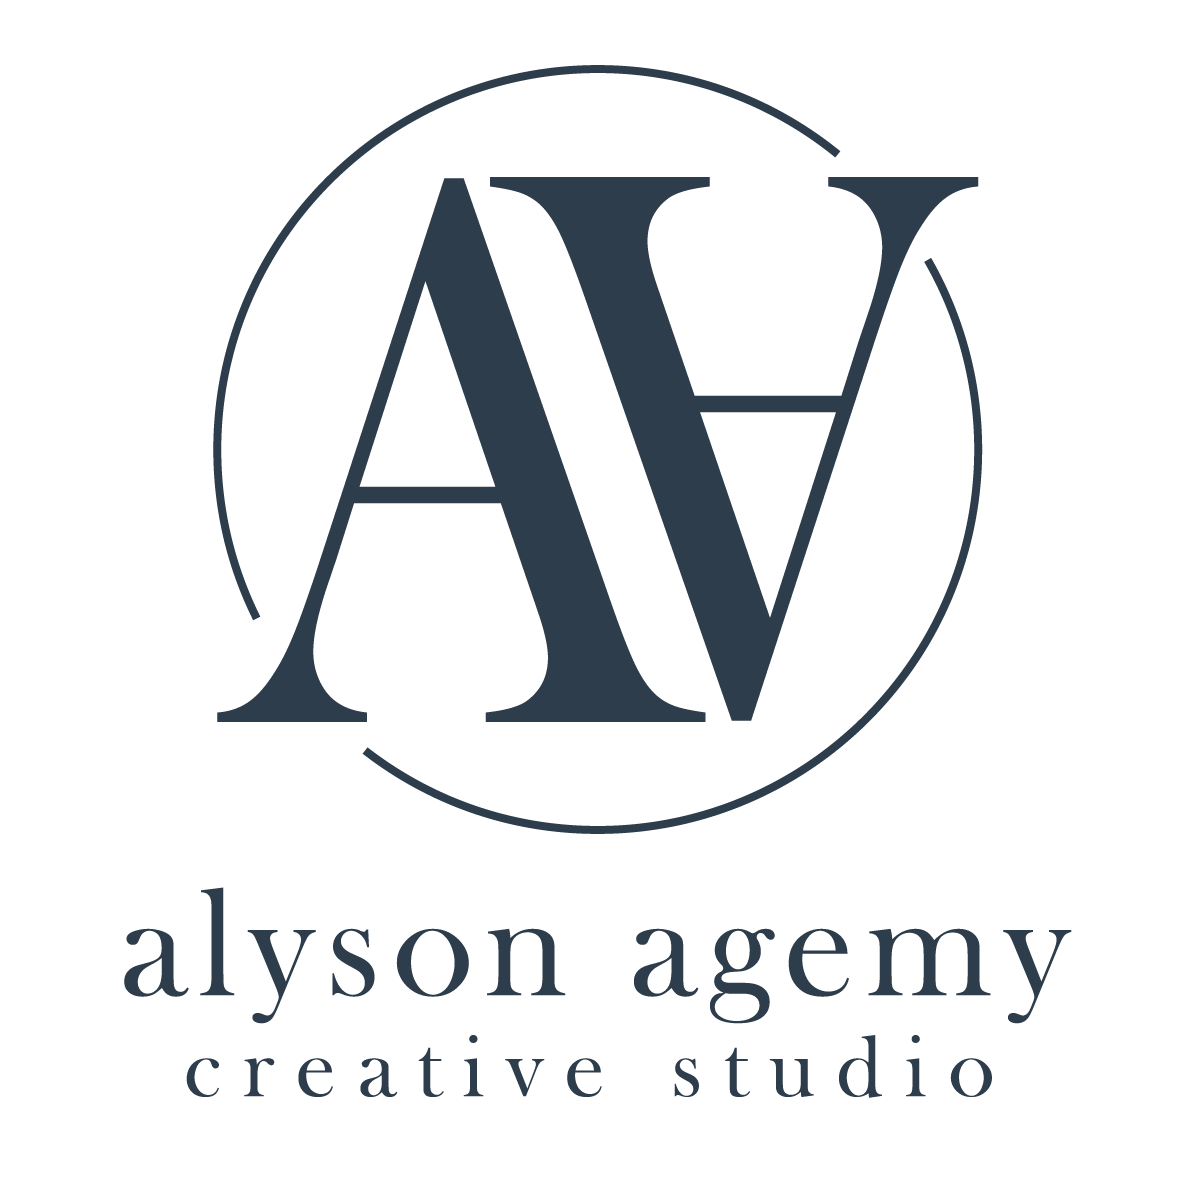 Alyson Agemy Creative Studio - Graphic & Web Design for Creative Entrepreneurs | Colorado